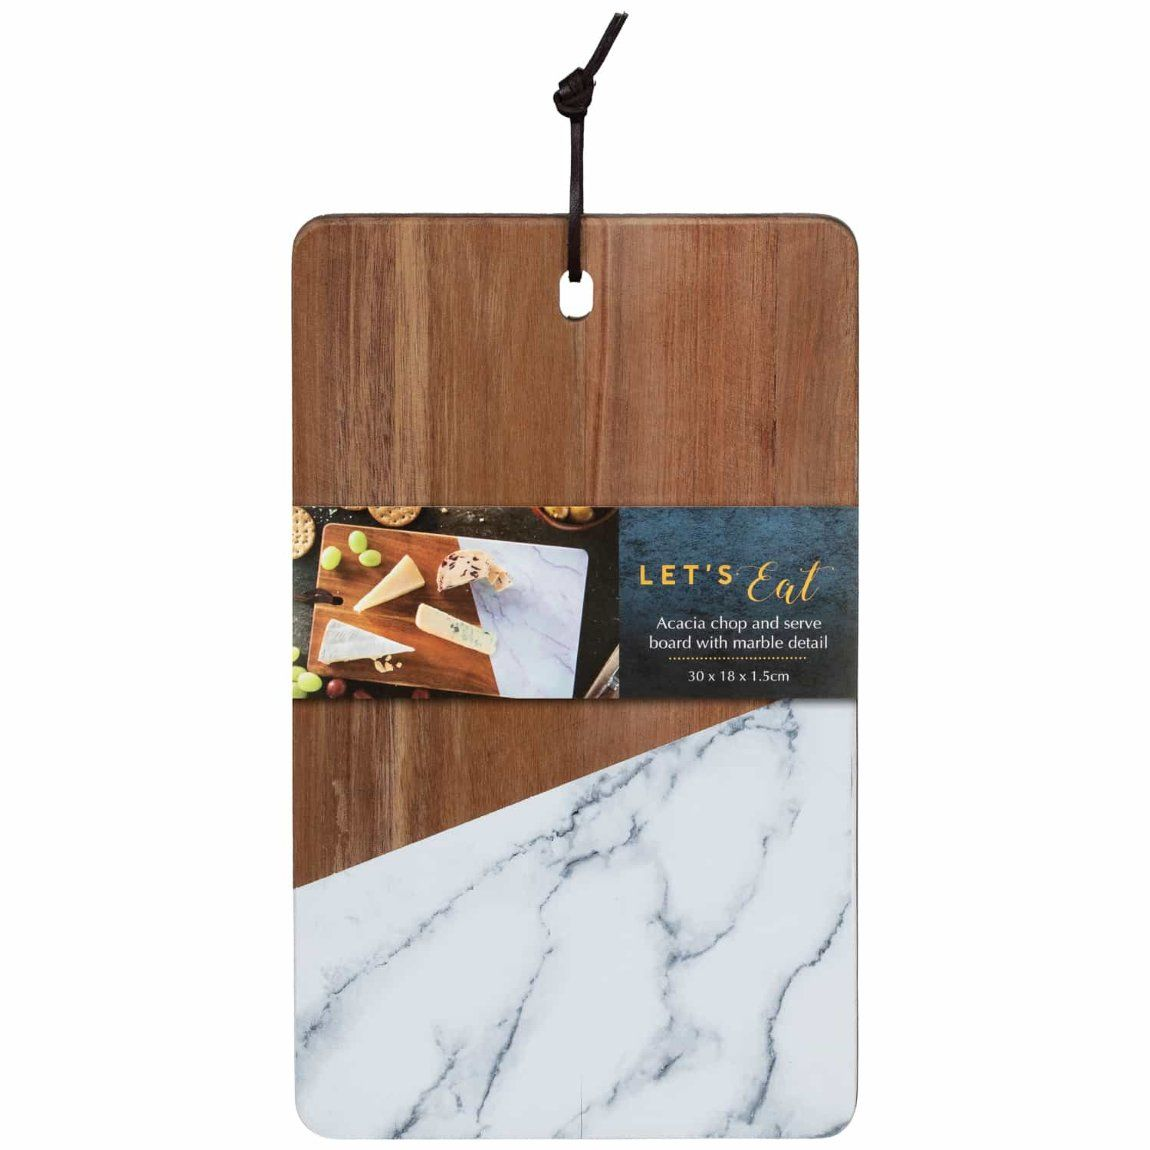 Acacia Chopping Board With Marble Small Kitchen